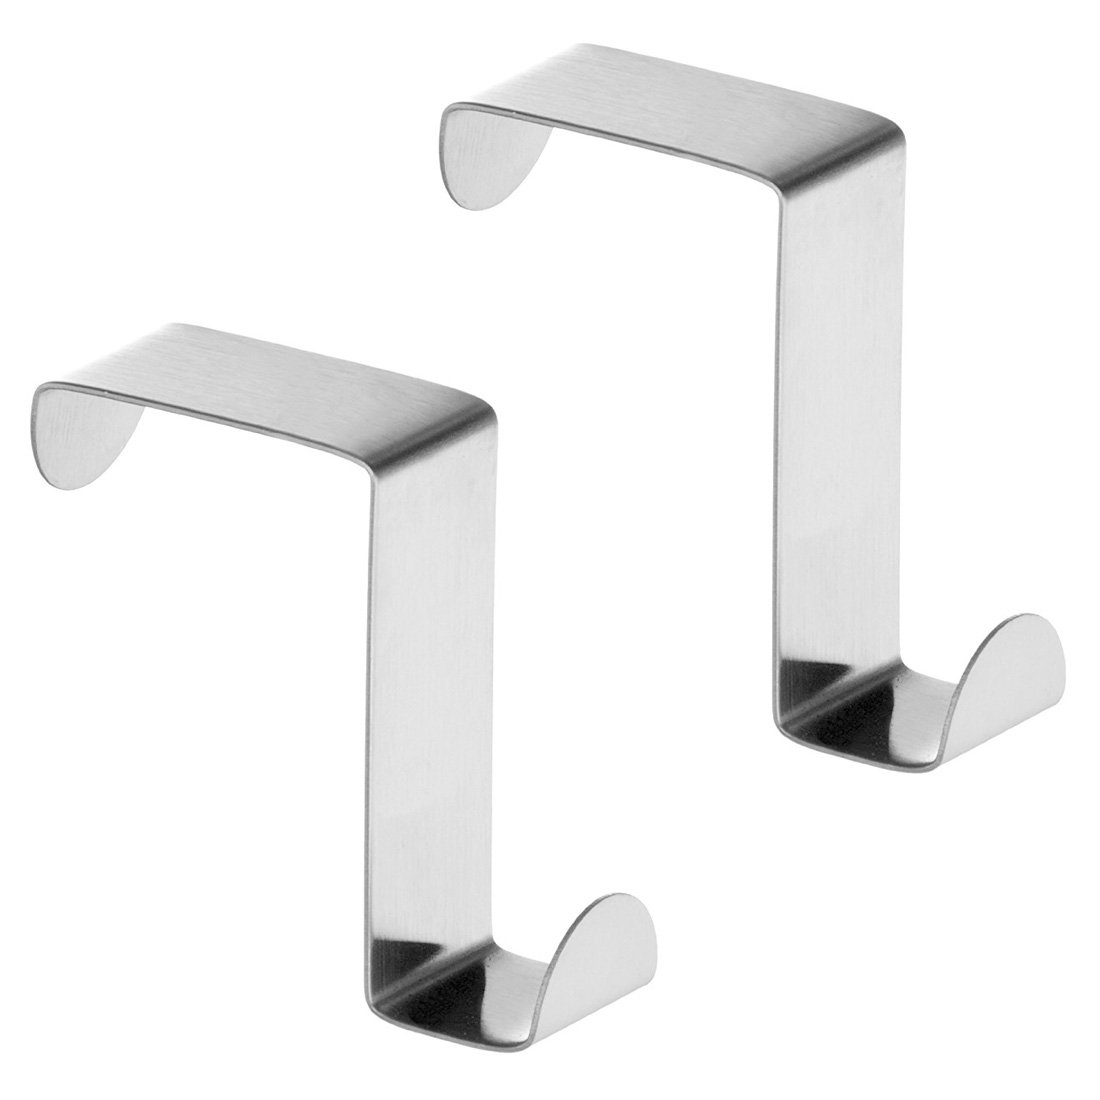 Hisuper-Store 2PCS Stainless Steel Cupboard and Drawer Hooks